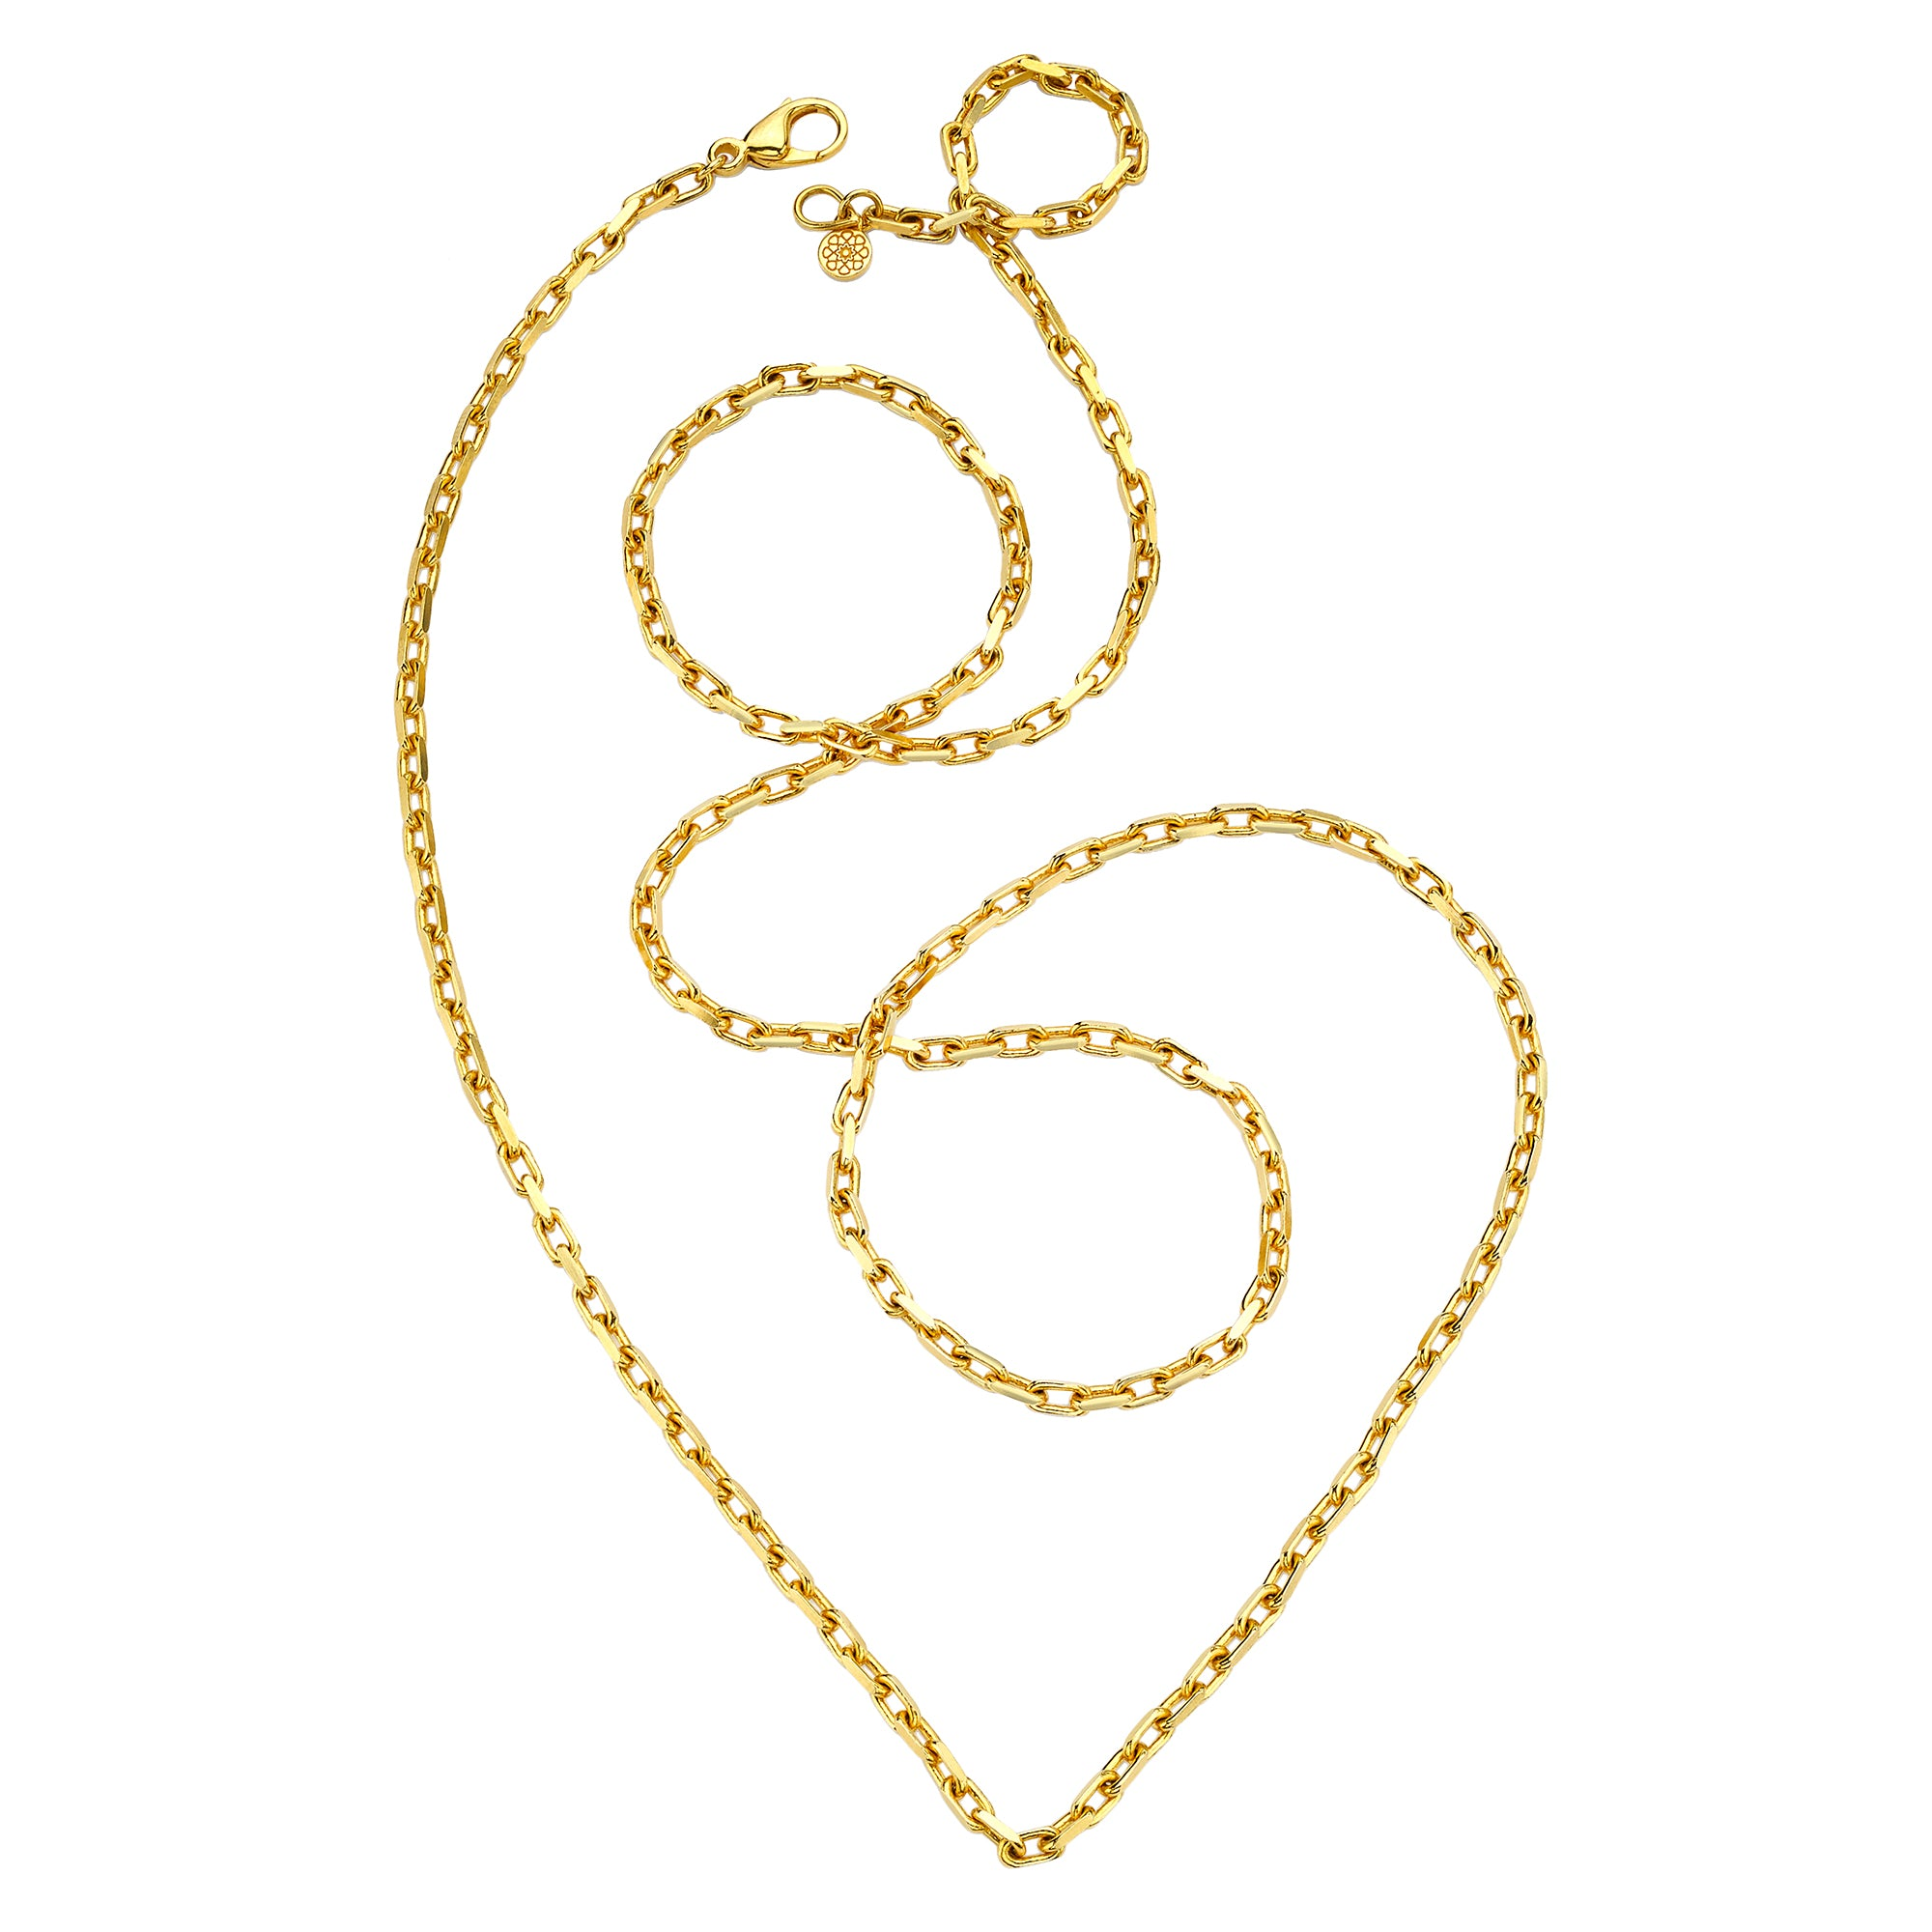 Gold Cable Chain by Buddha Mama for Broken English Jewelry